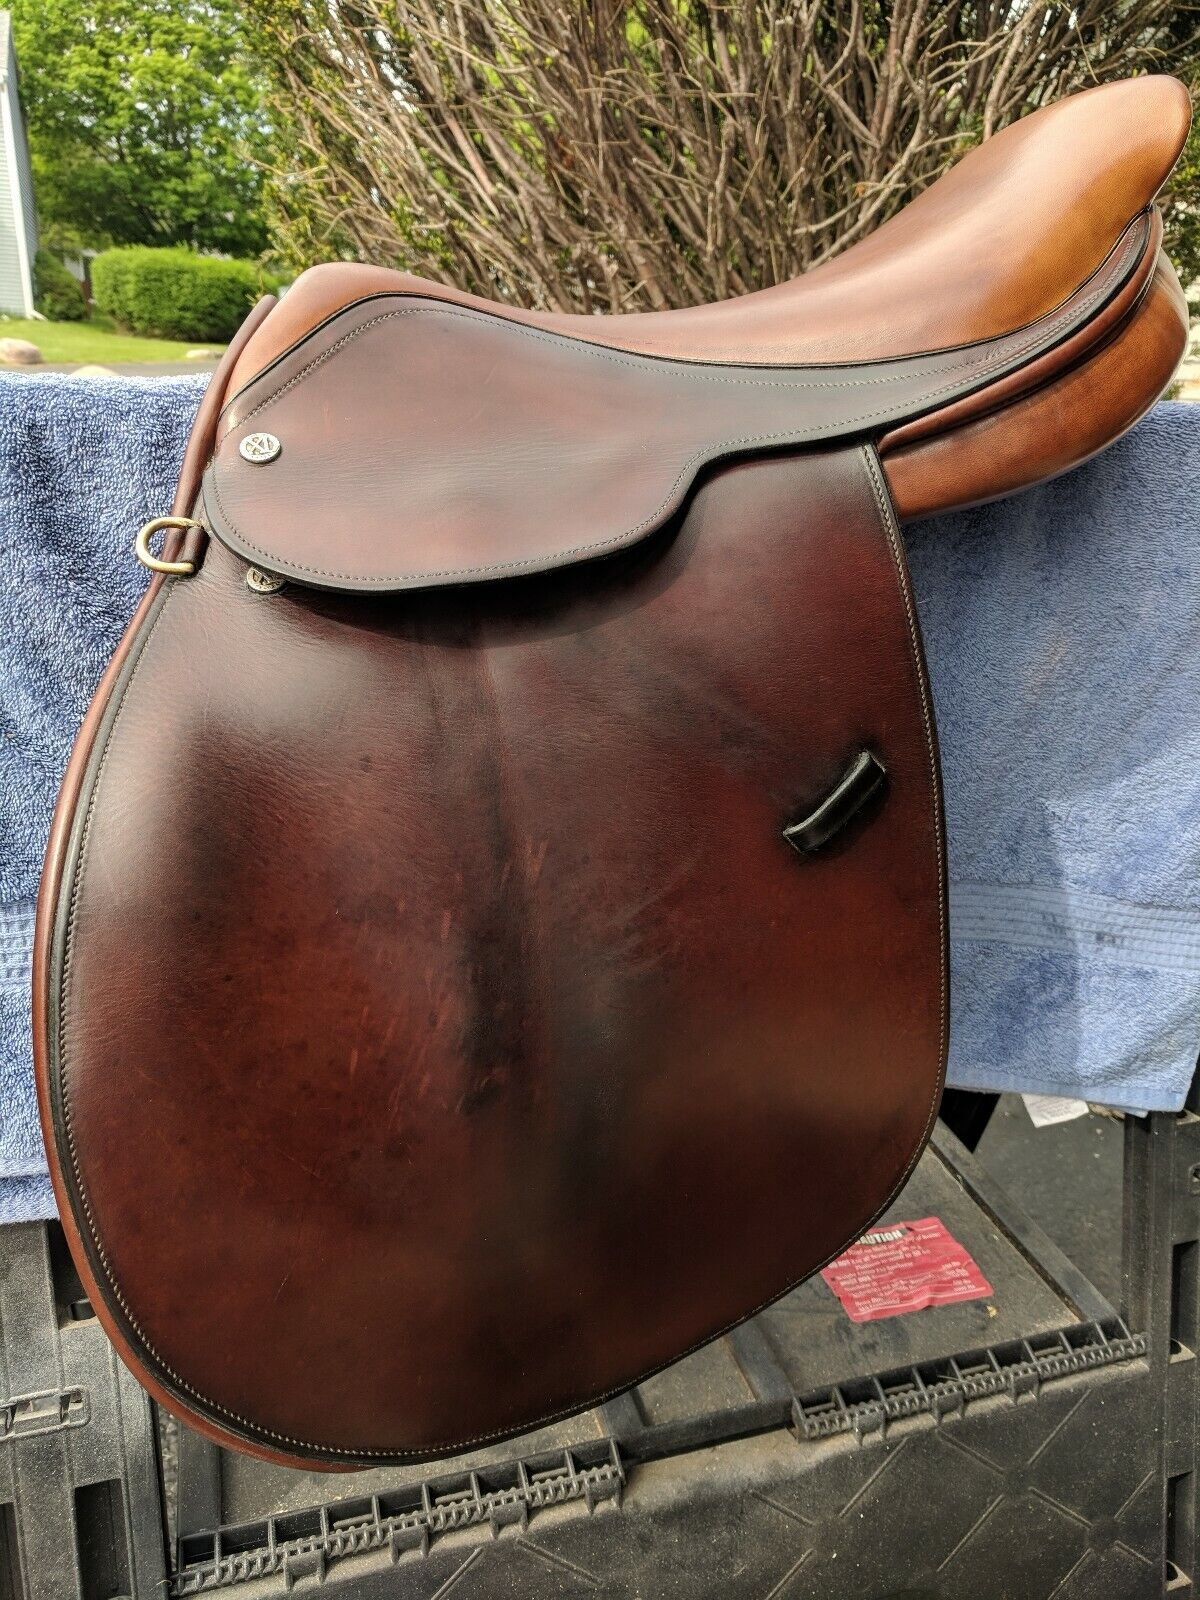 Crosby XL E Huntseat Equitation Saddle 17in